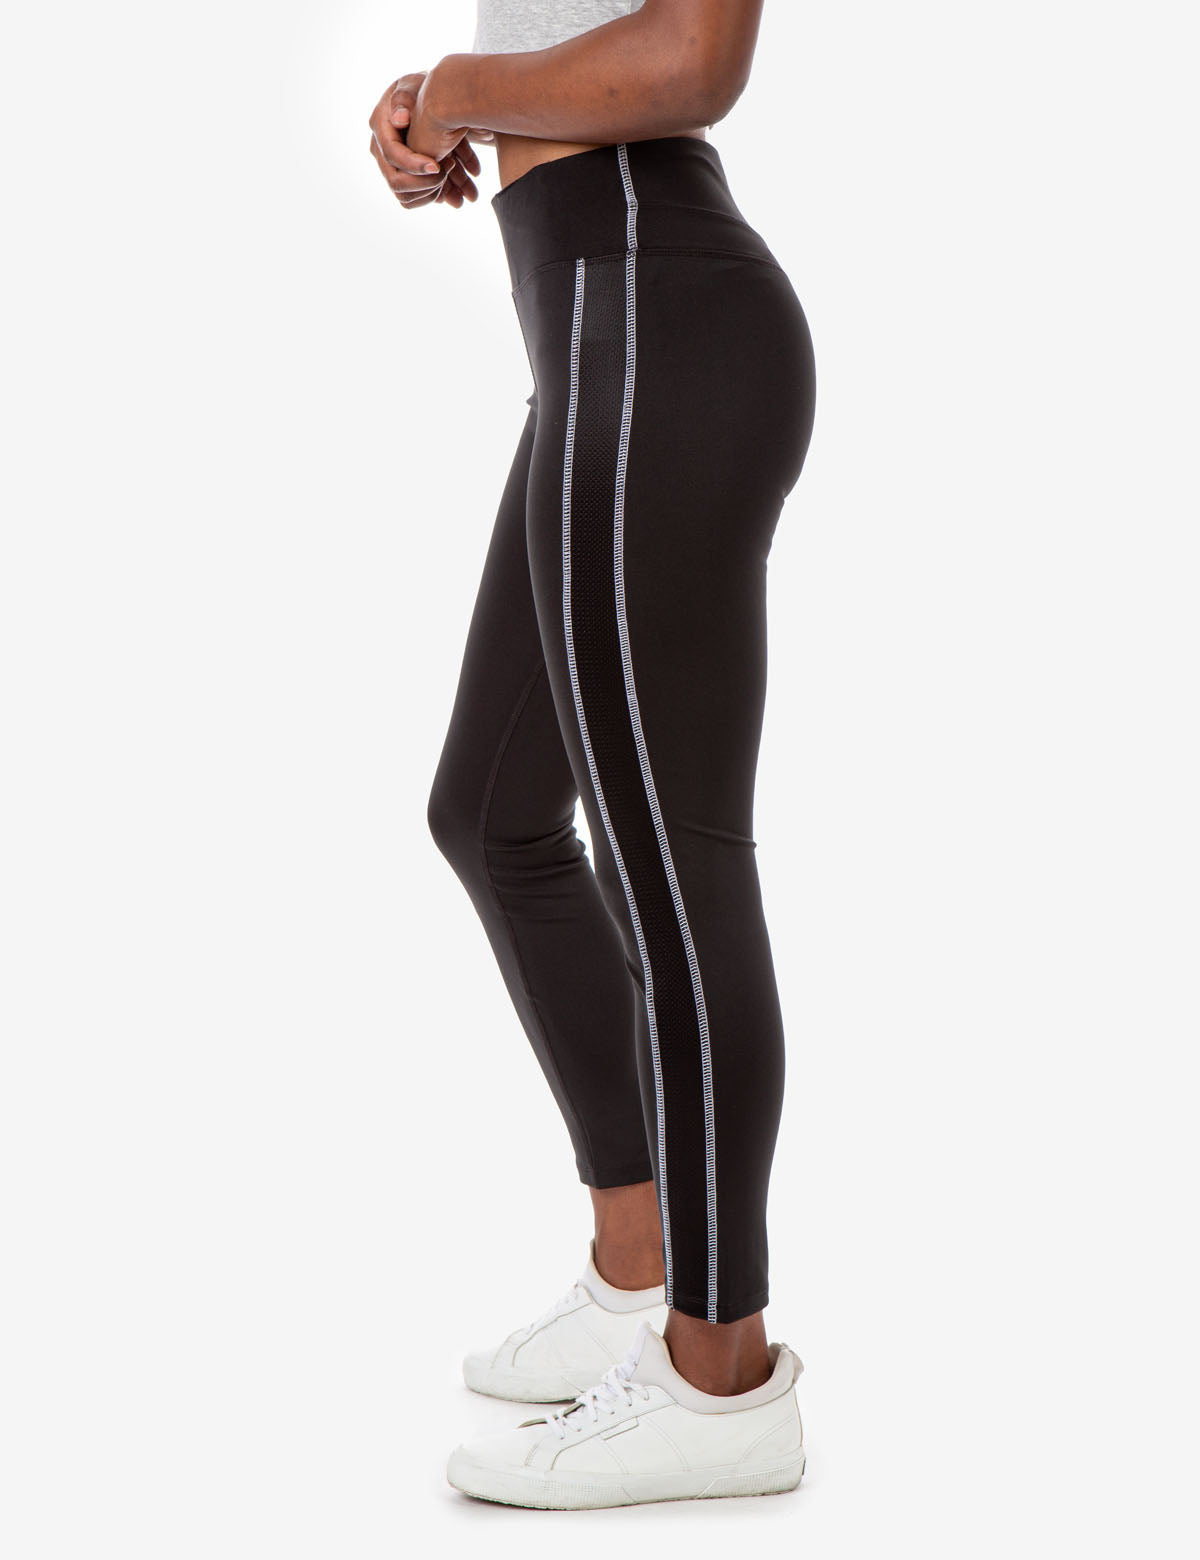 MESH LEGGING - U.S. Polo Assn.